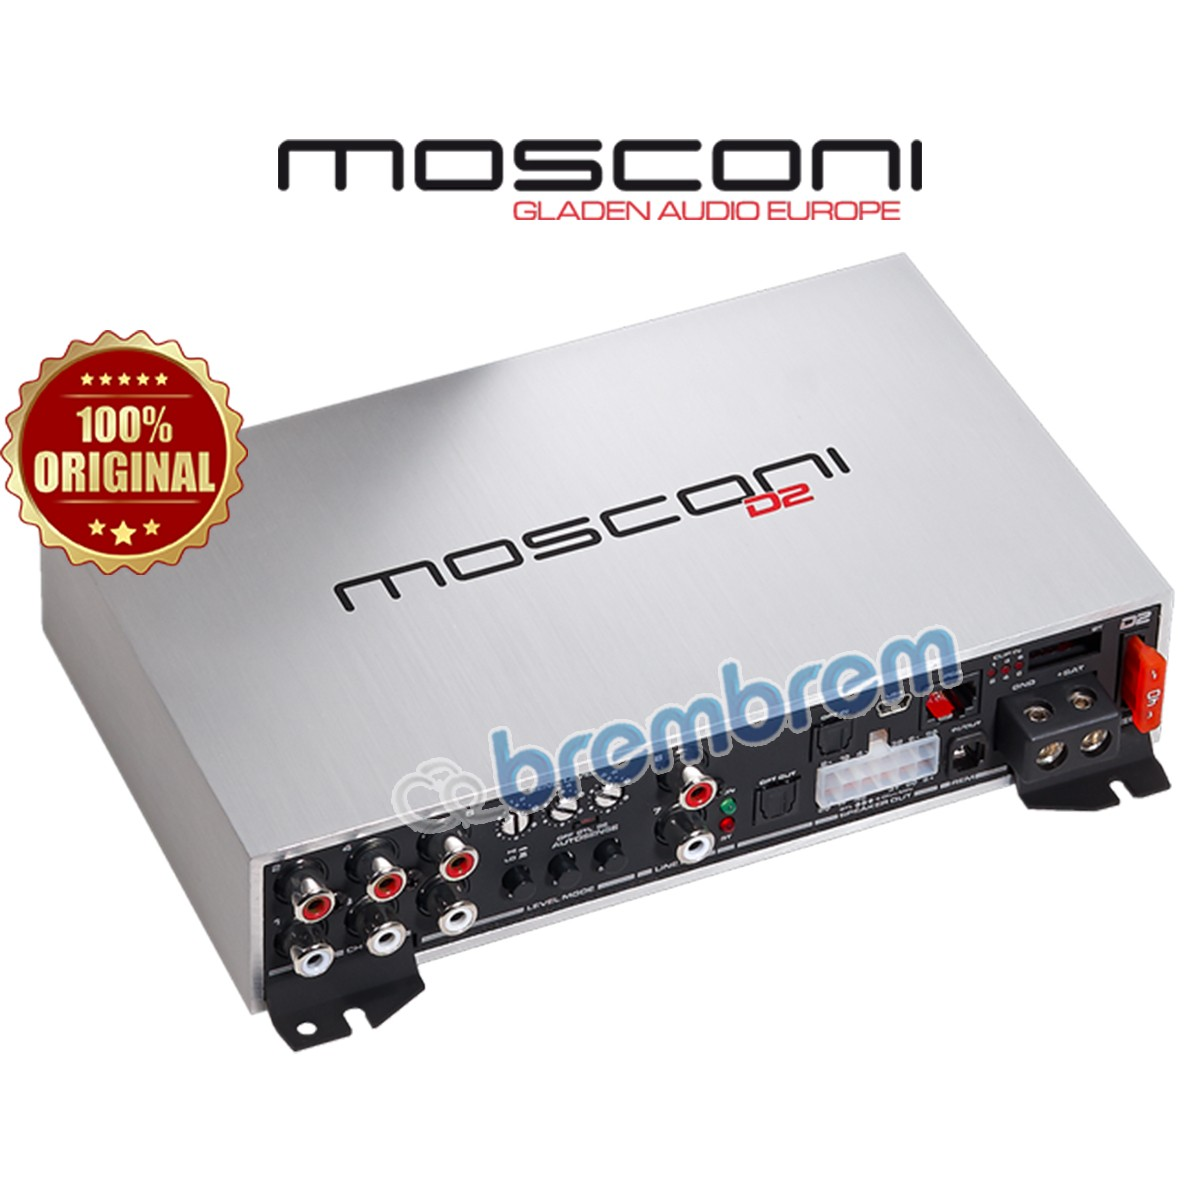 MOSCONI D2 80.6 DSP - POWER 6 CHANNEL